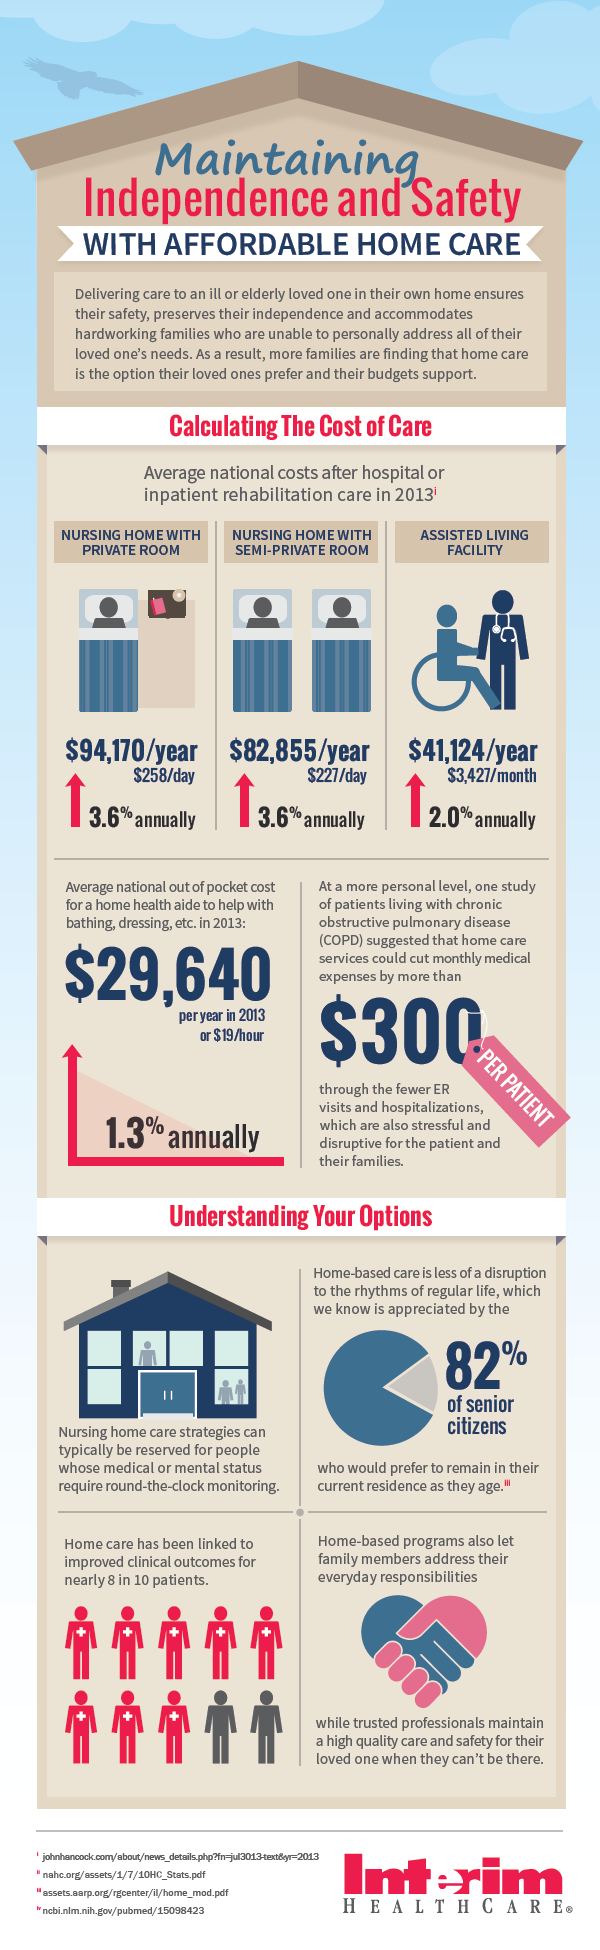 Interim HealthCare Calculating the Cost of Home Care InfoGraphic